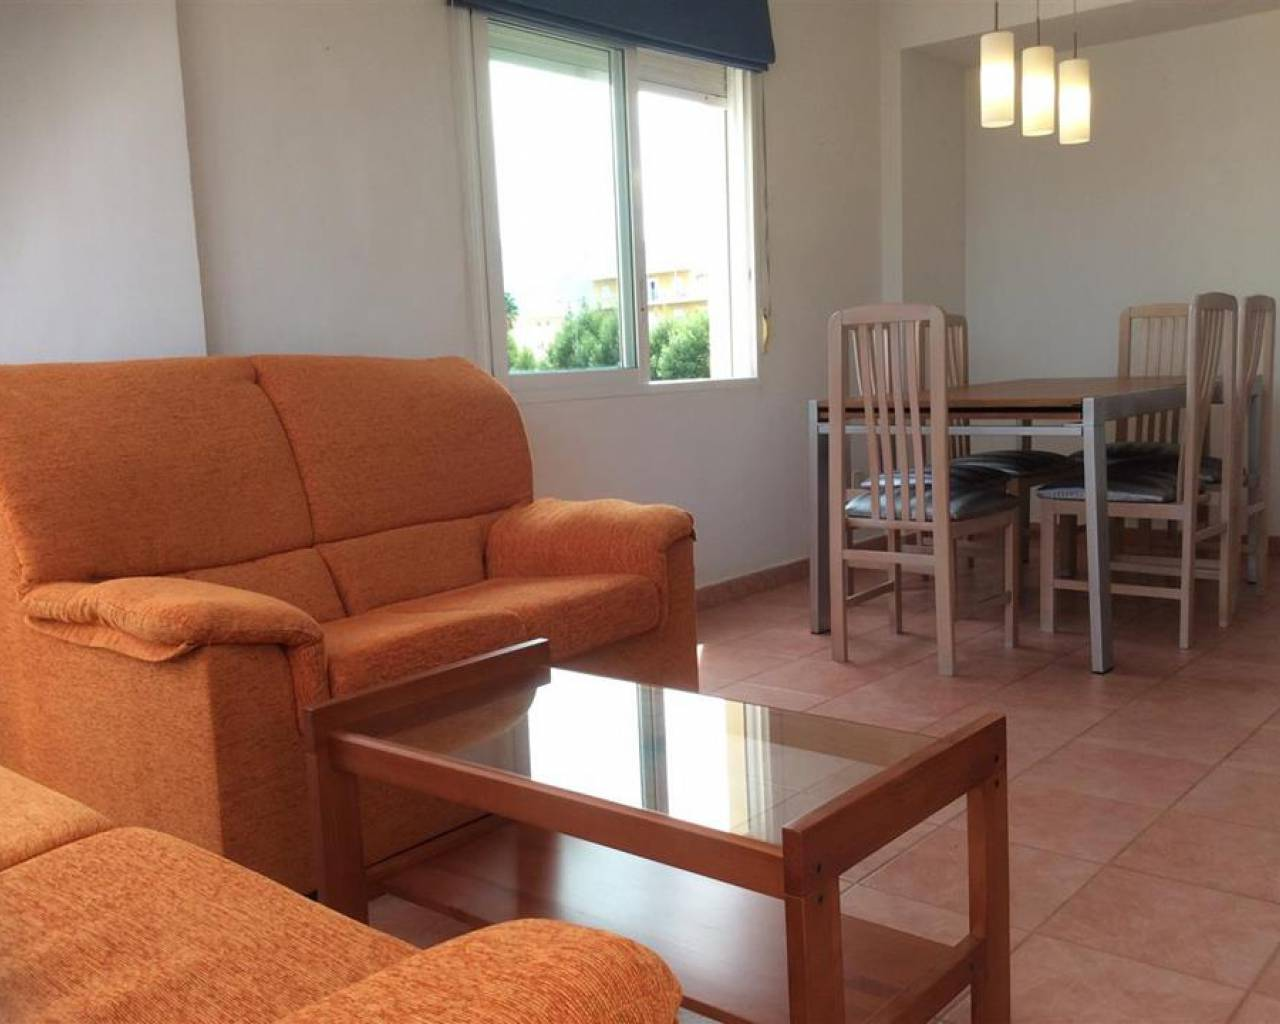 Revente - Appartement - Denia